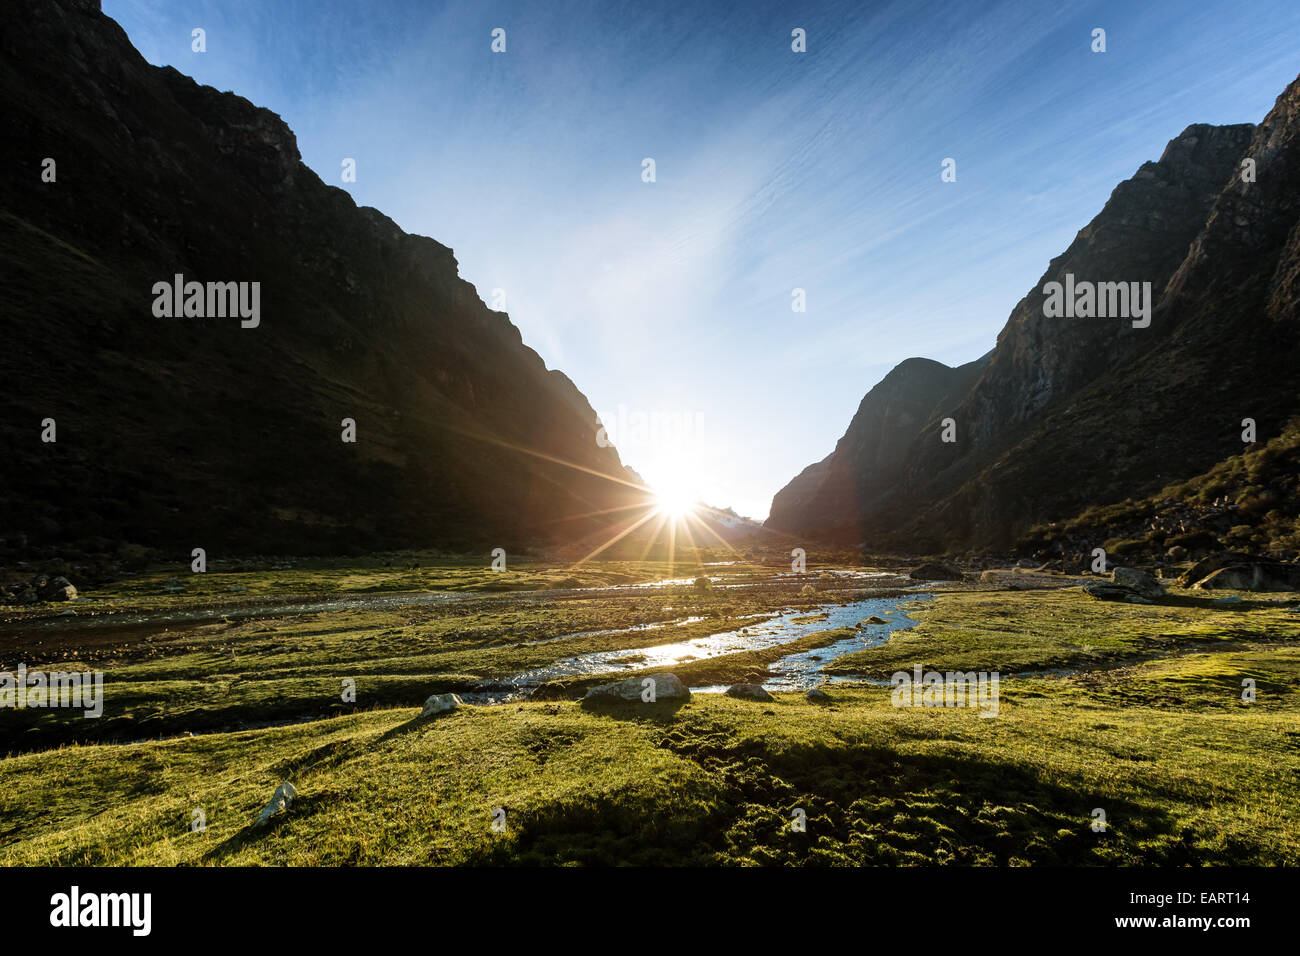 Sunrise at Llamacorral camping place, Santa Cruz valley, Cordillera Blanca, Andes, Peru, South America - Stock Image